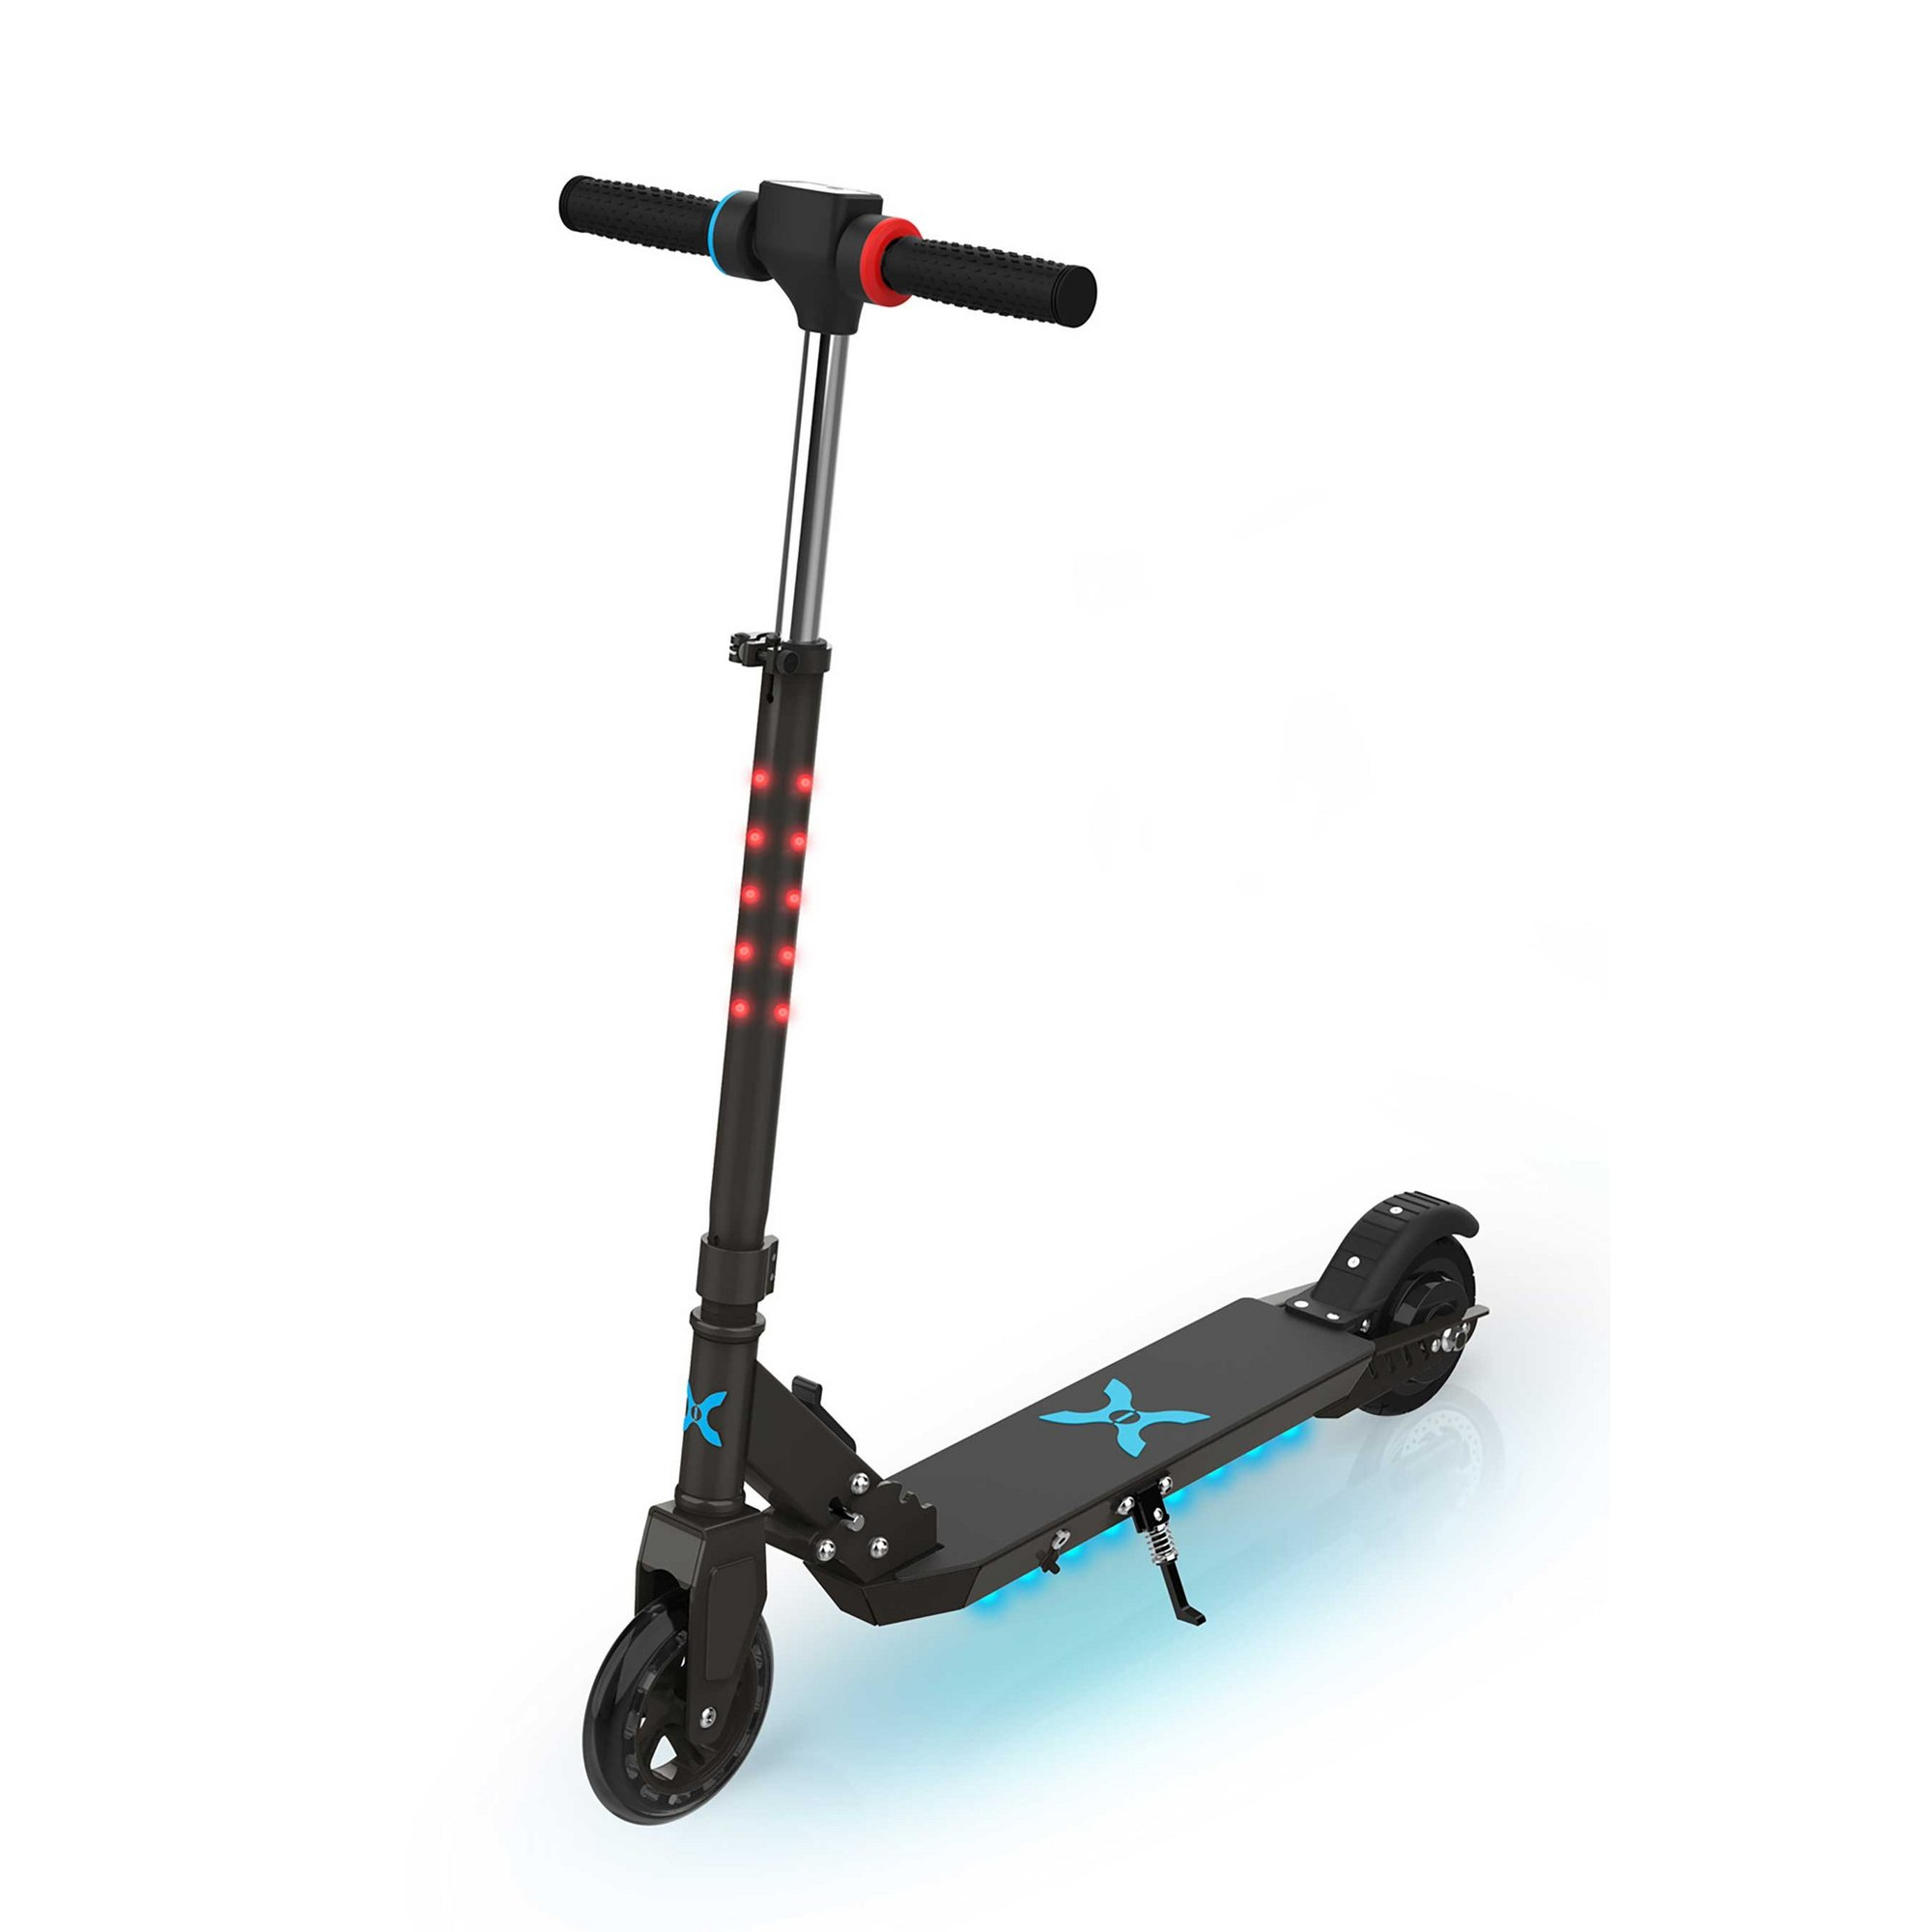 Image of Hover-1 Comet Scooter